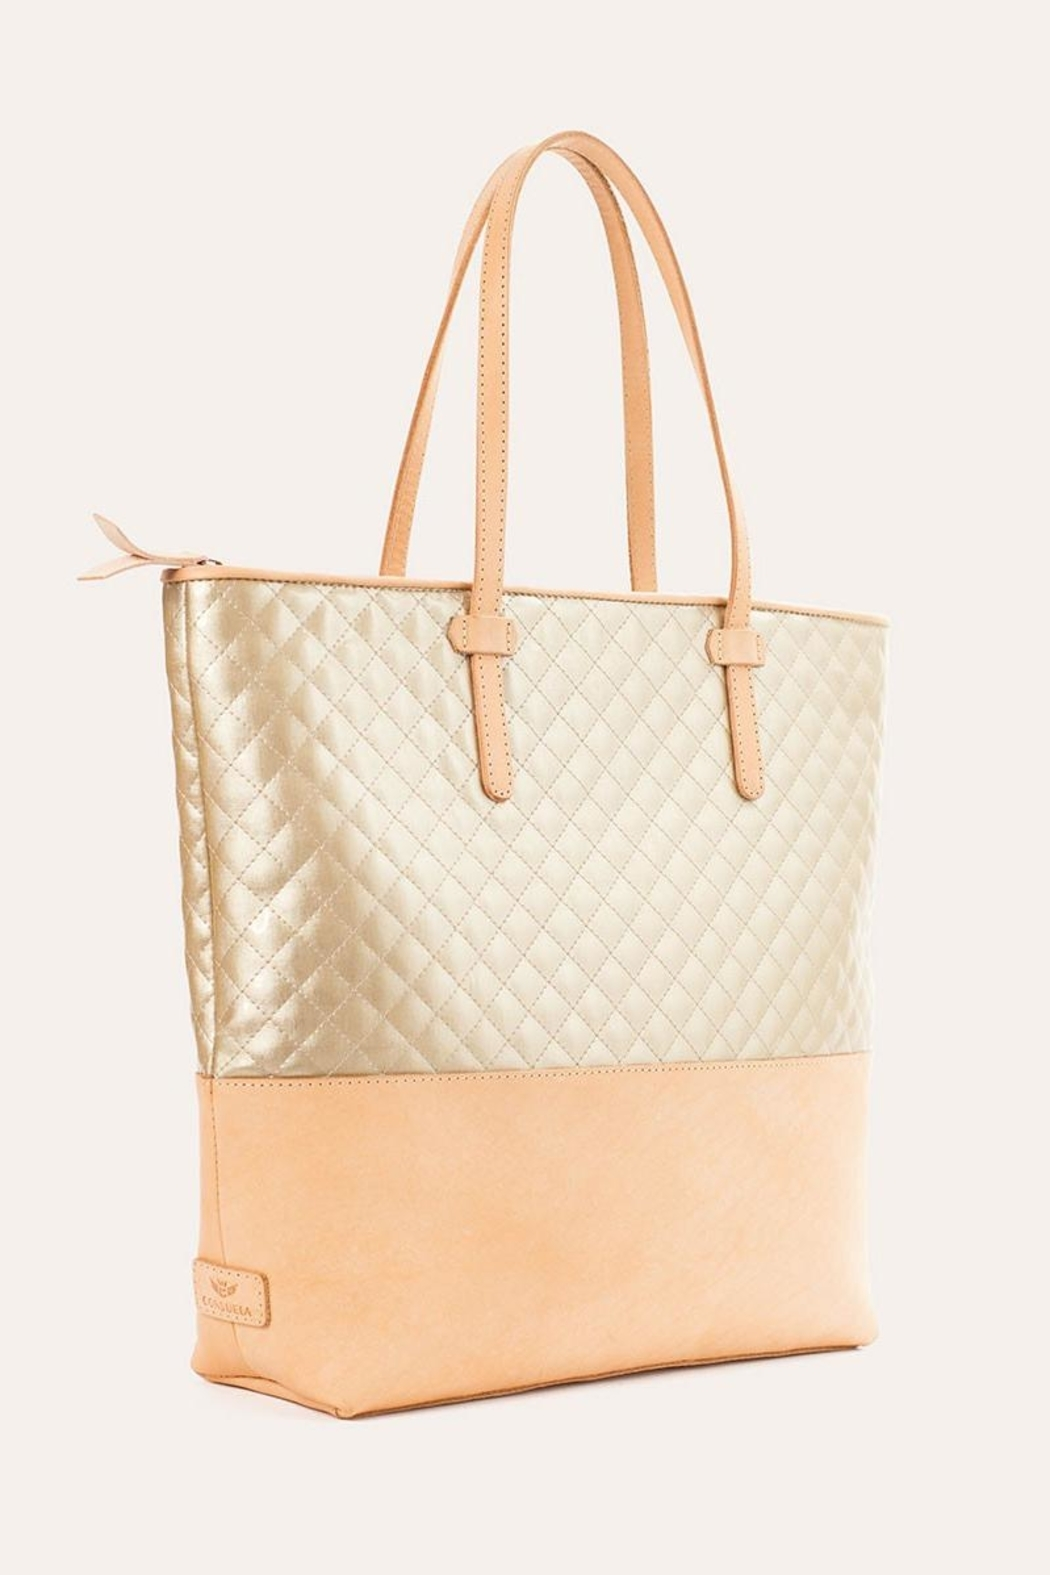 The Birds Nest MARKET TOTE-CANDY CHAMPAGNE - Front Full Image